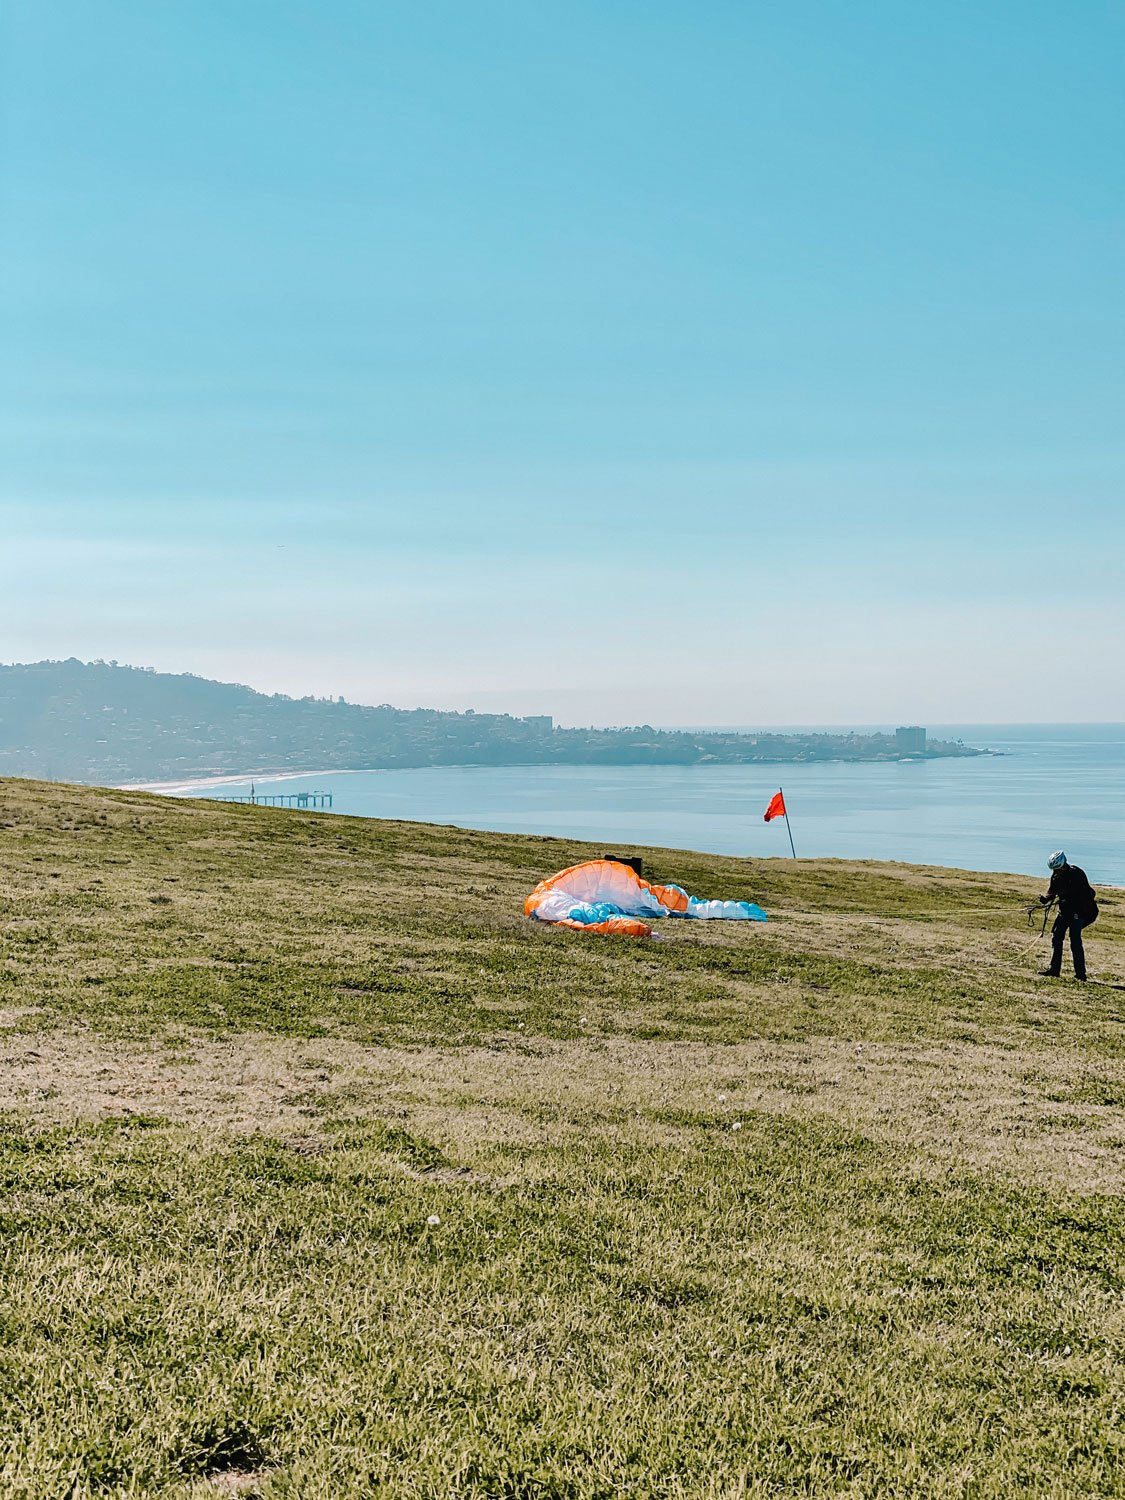 Hanggliding at Torrey Pines Natural Preserve San Diego